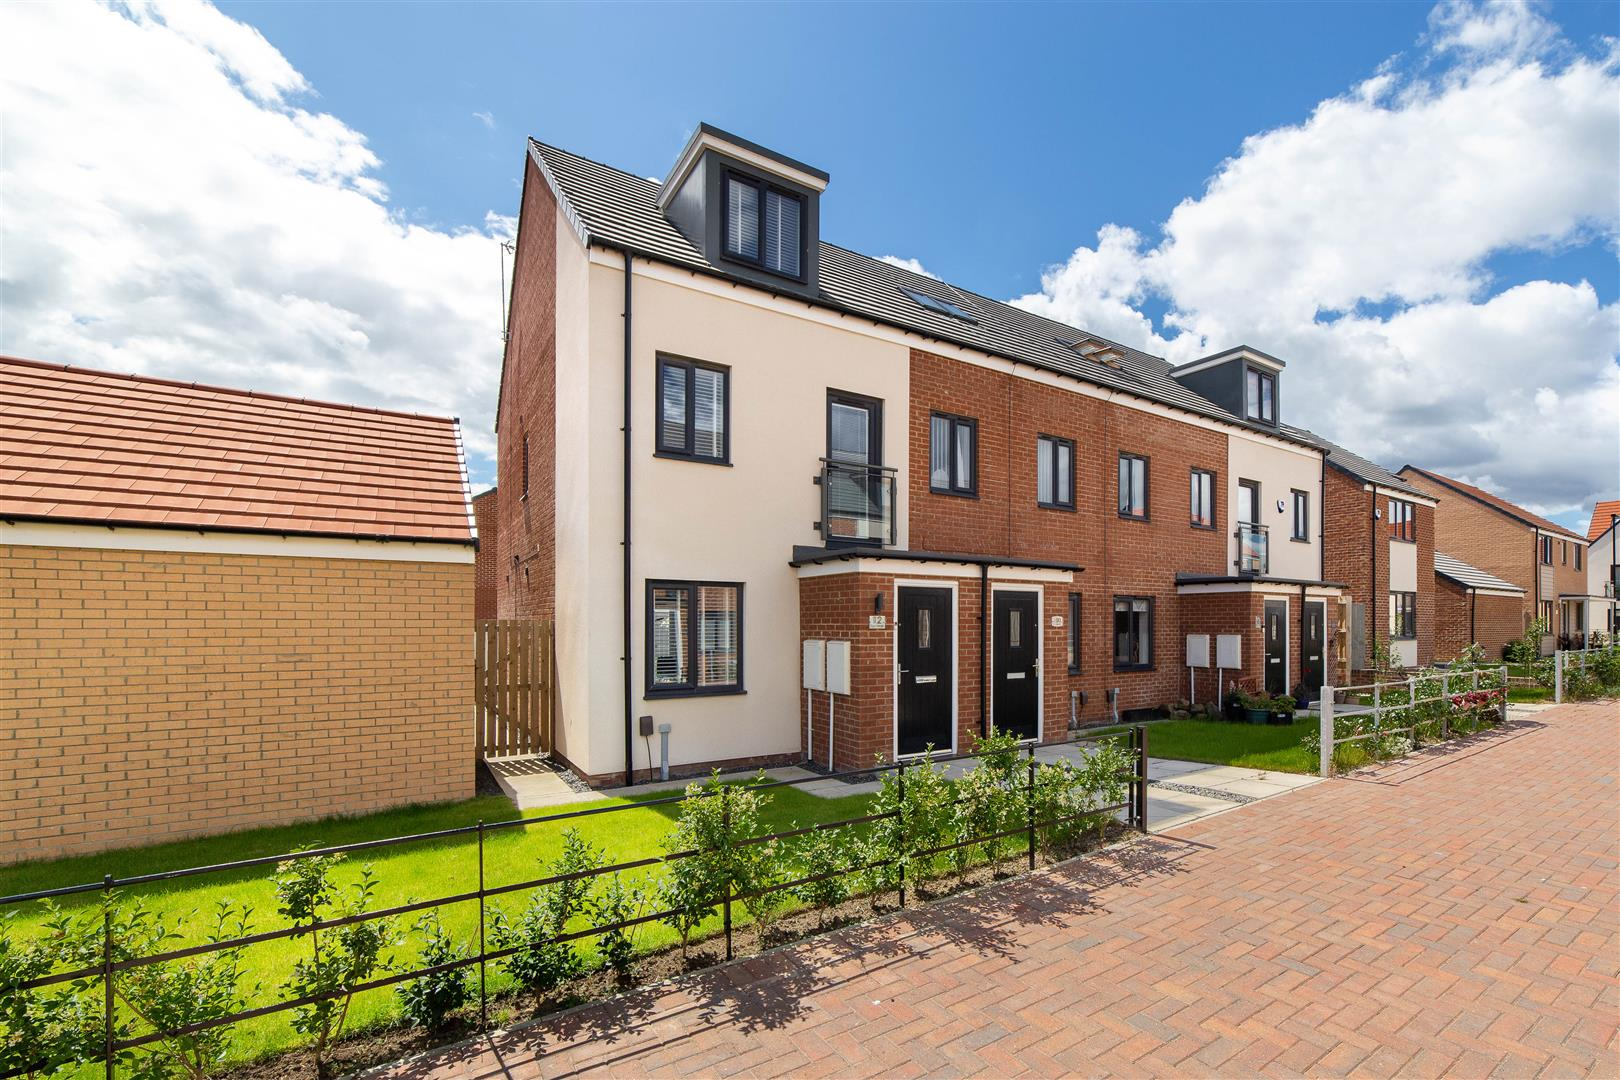 3 bed town house for sale in Wallsend, NE28 9FA  - Property Image 1